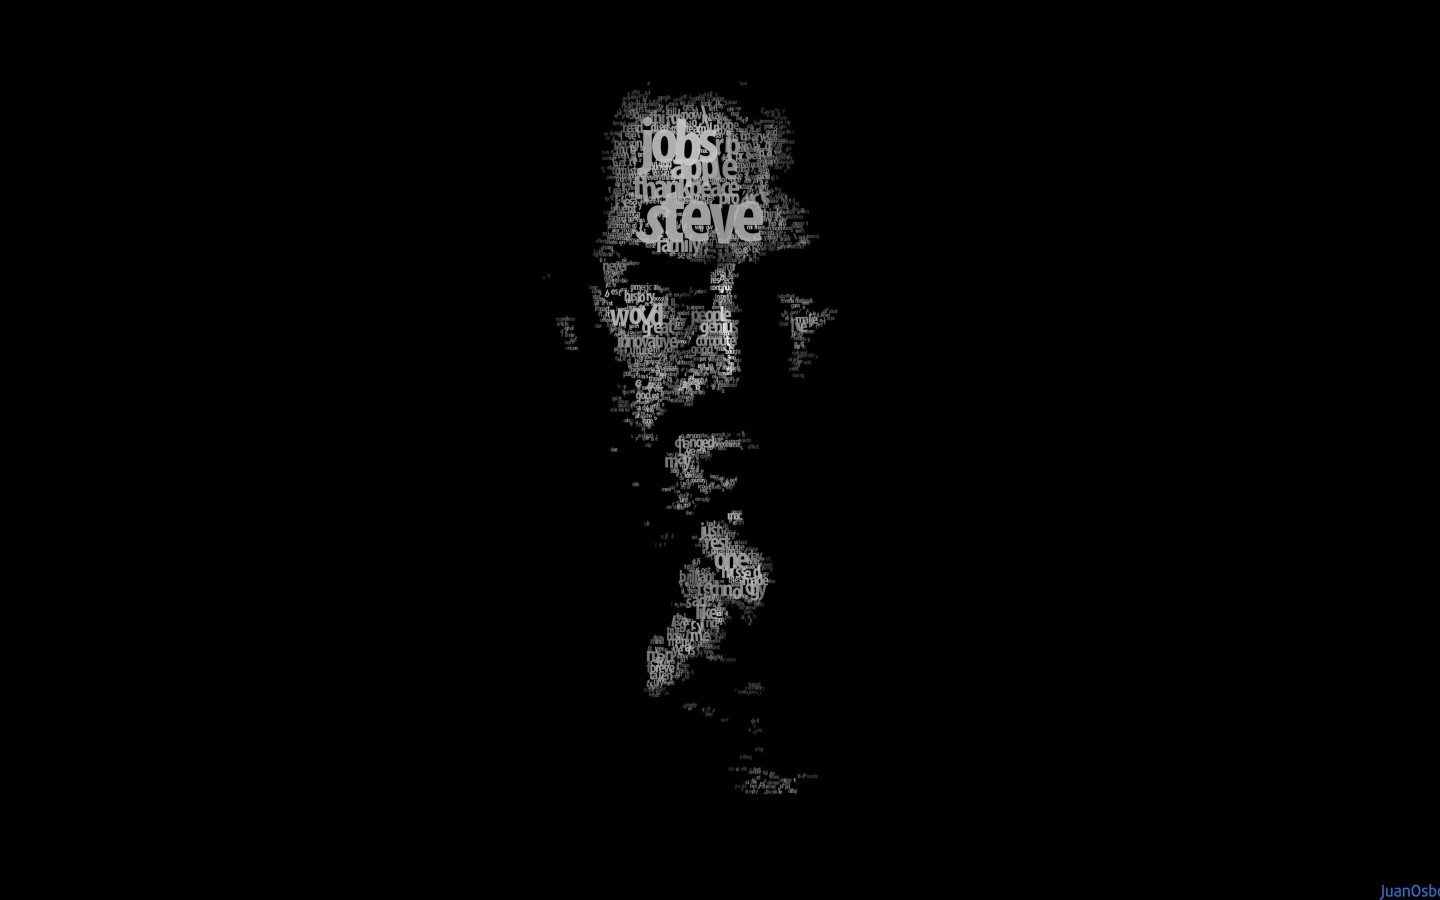 Typeface Portrait of Steve Jobs Wallpaper for Desktop 1440x900